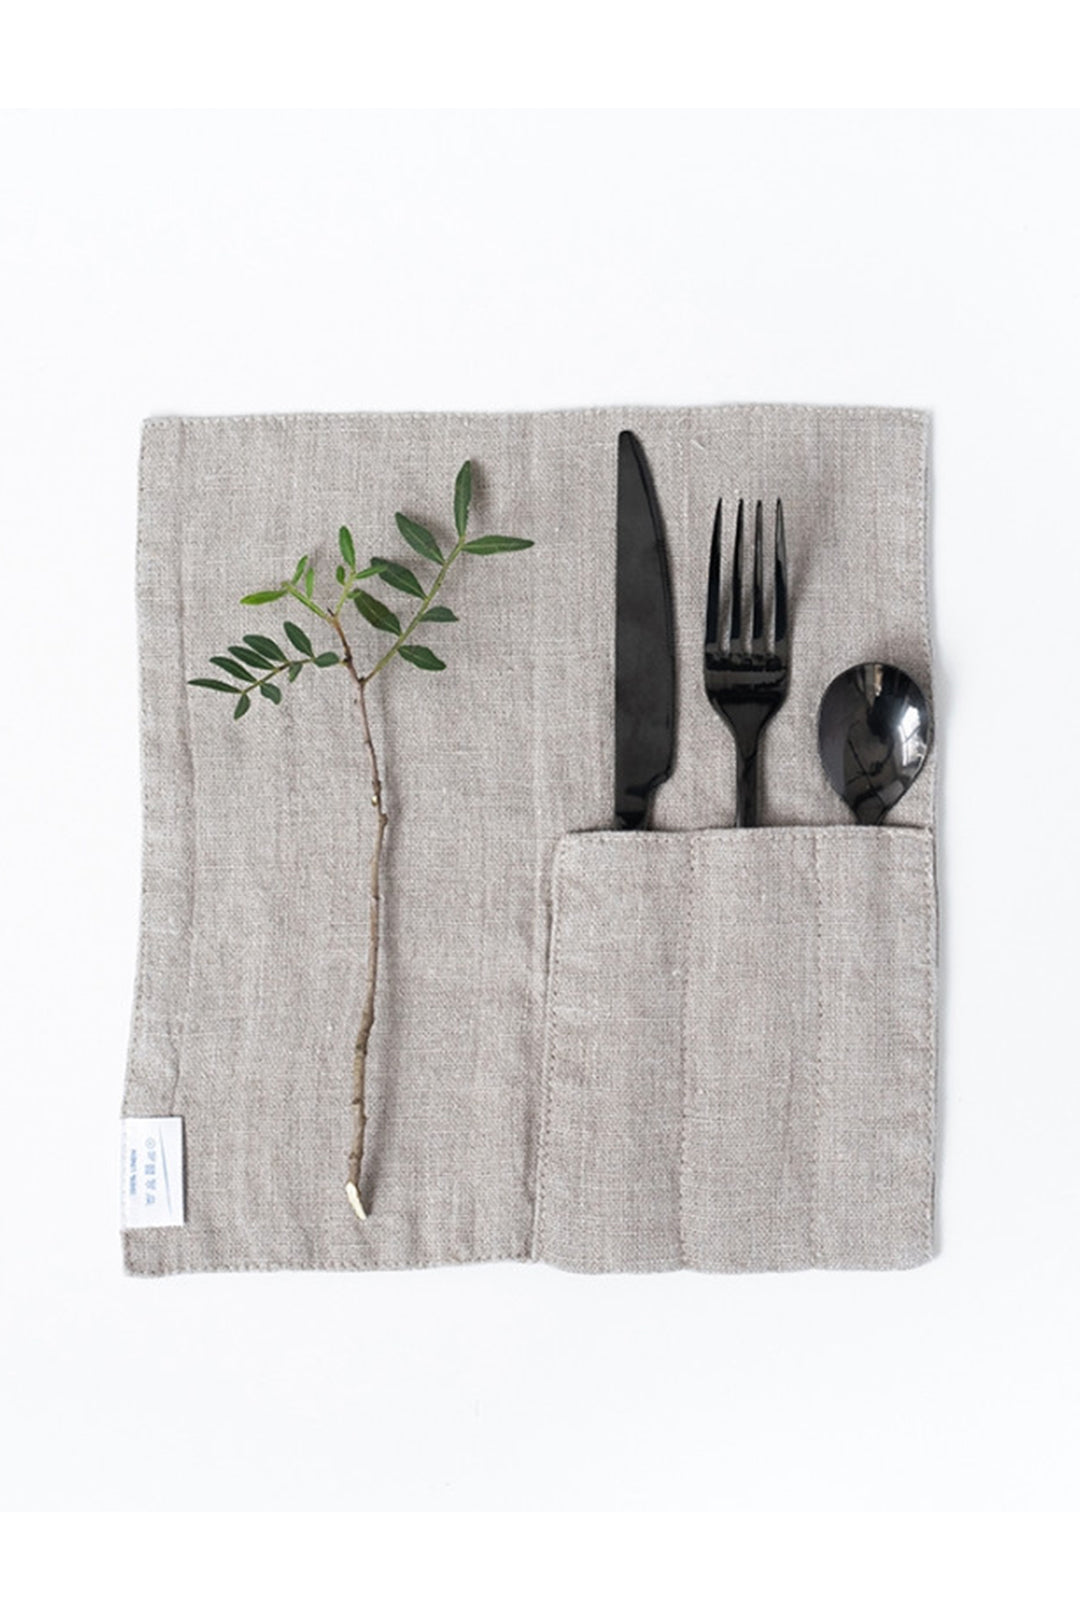 Natural Washed Linen Cutlery Pockets, Set of 2